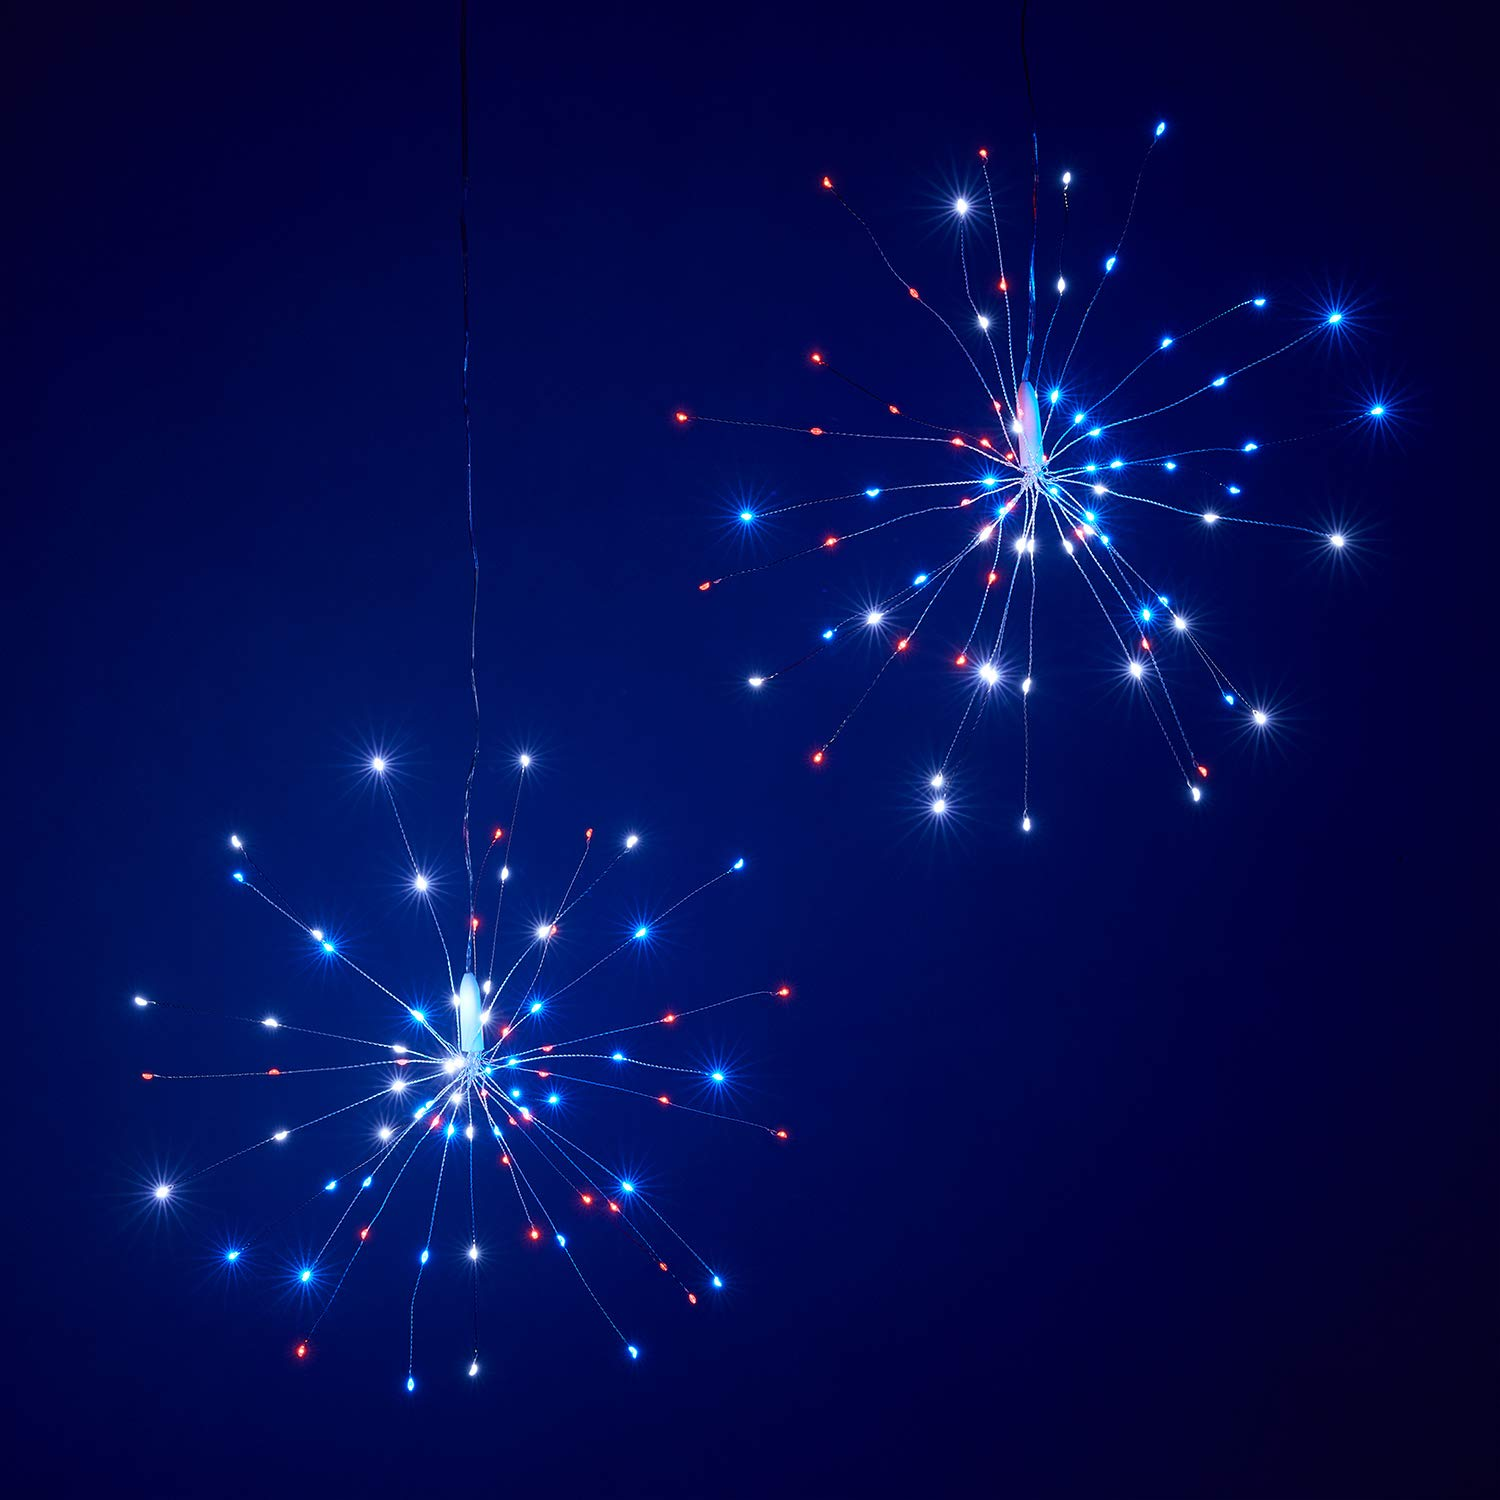 Lights4fun, Inc. 2 Pack of Red, White & Blue Micro LED Battery Operated Indoor & Outdoor Hanging 4th July Firework Starburst Lights